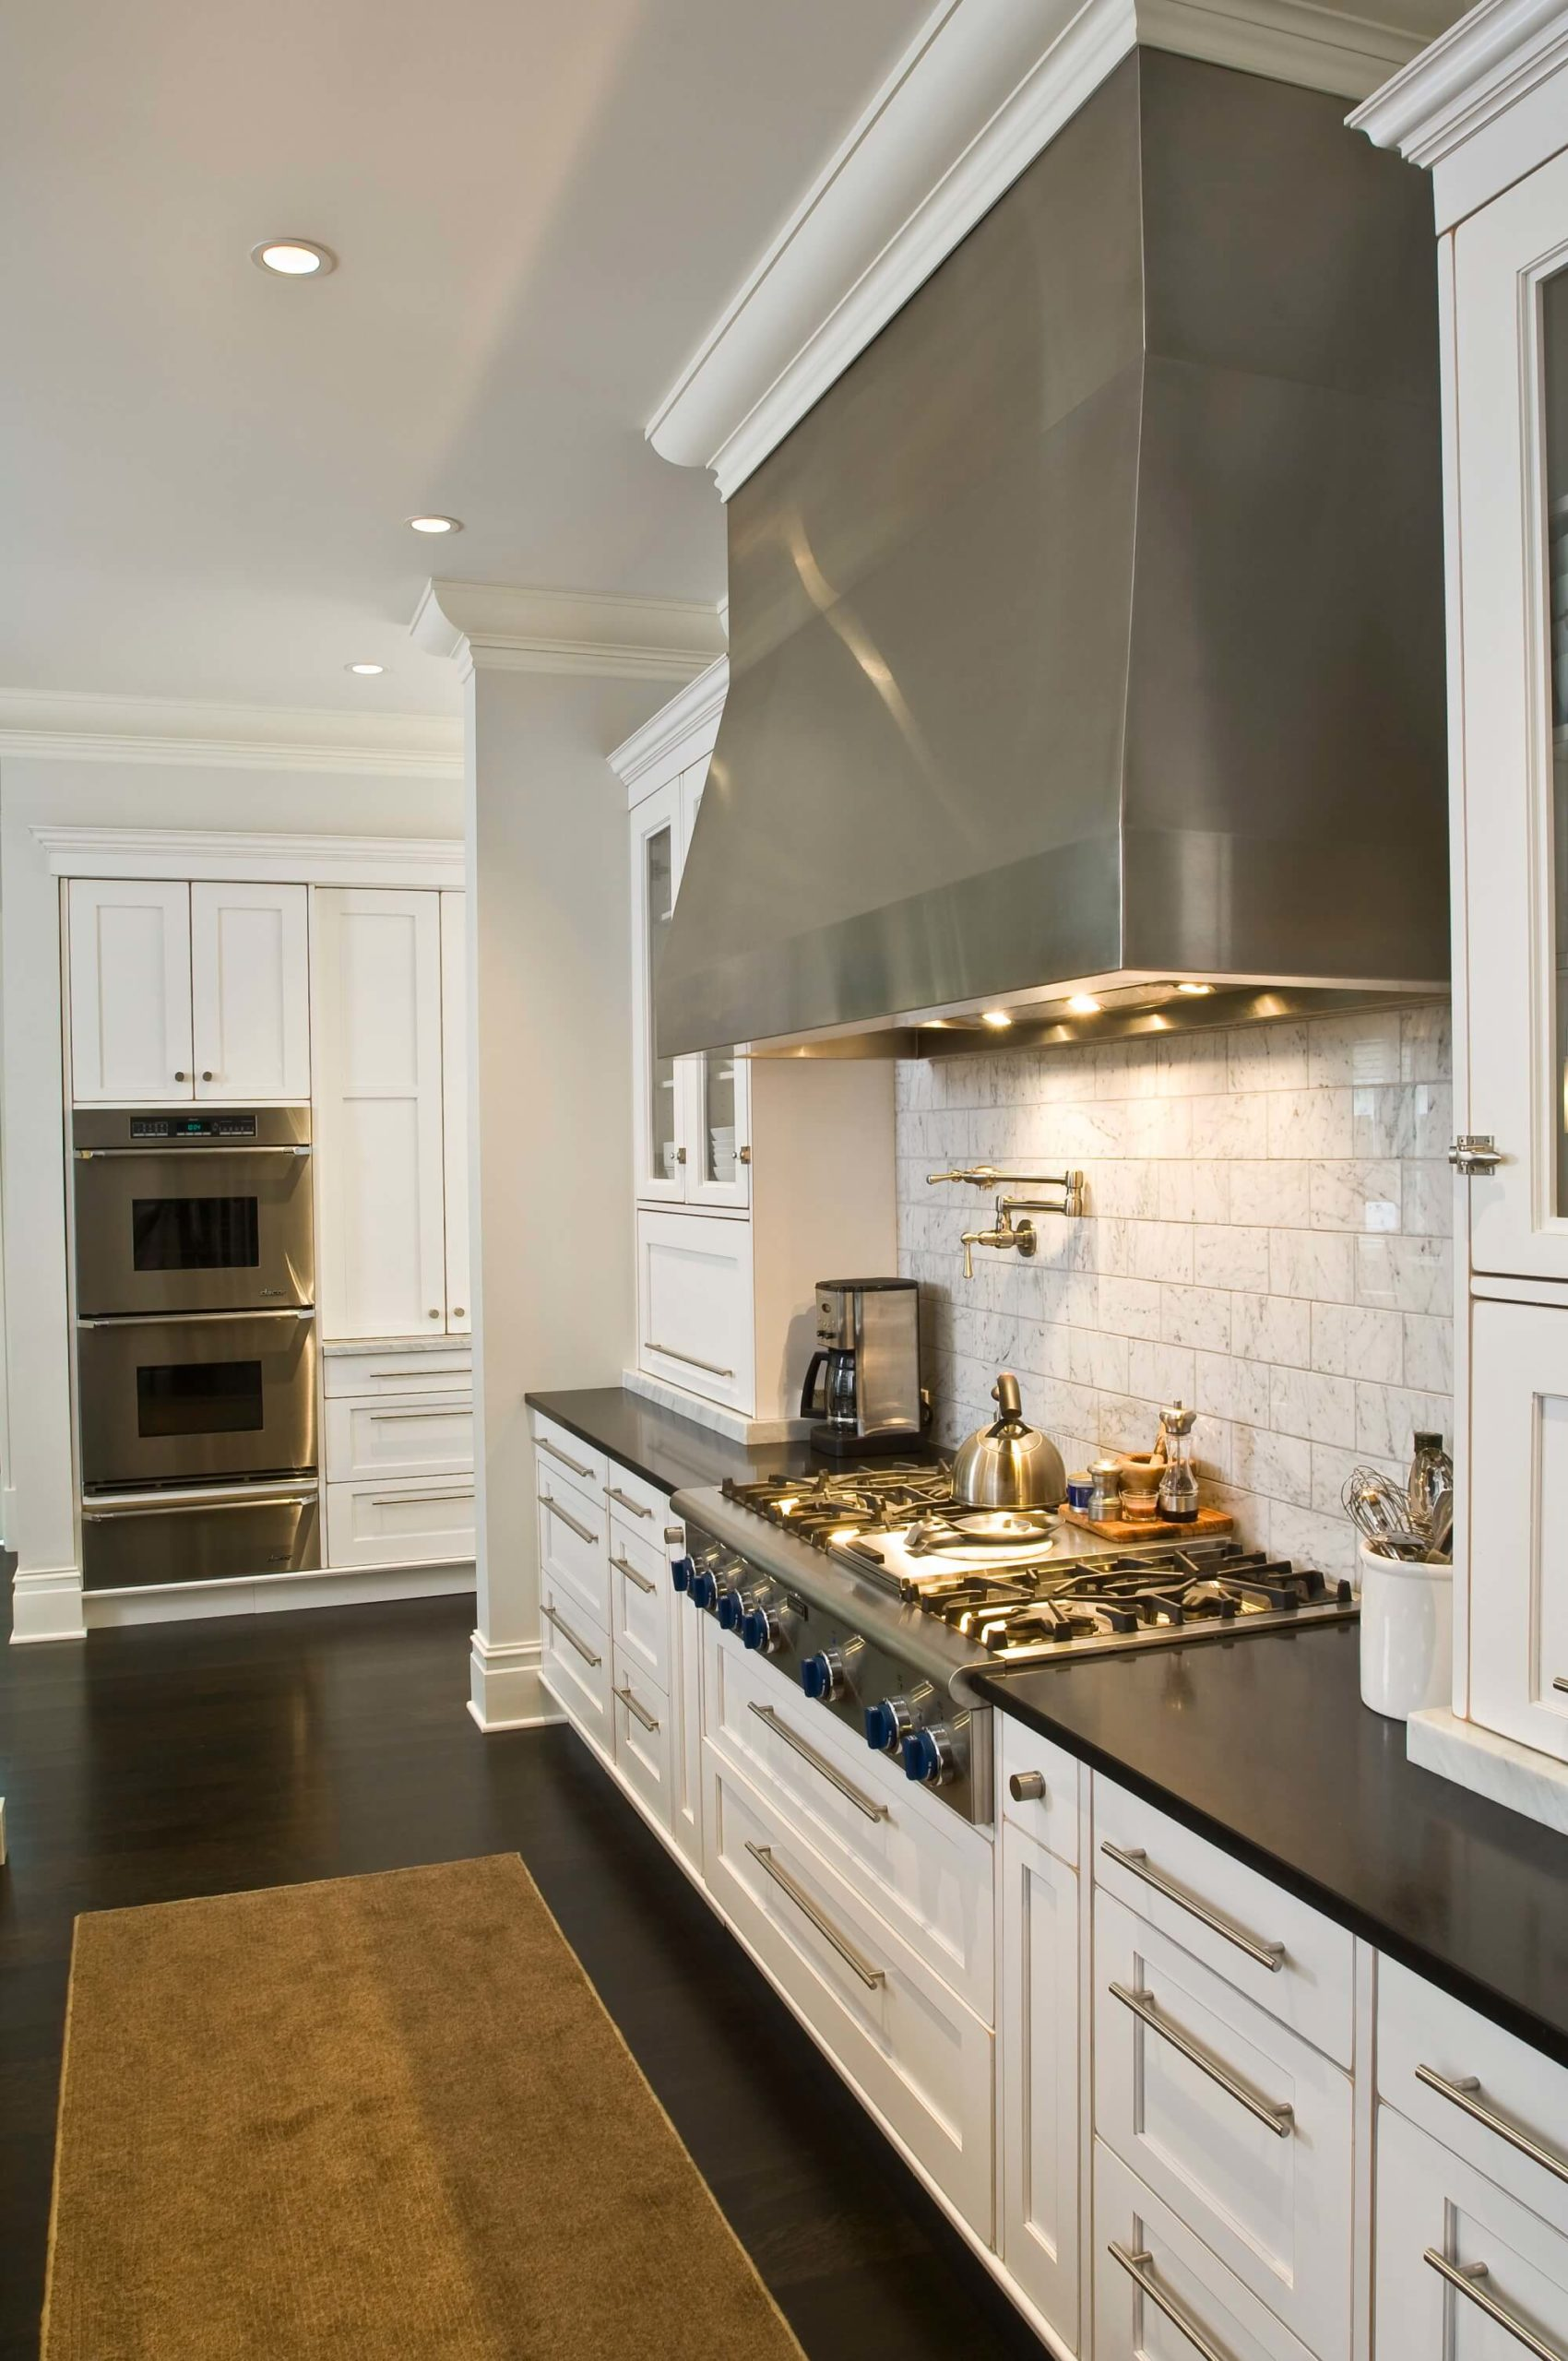 Excellent for Entertaining by Conceptual Kitchens